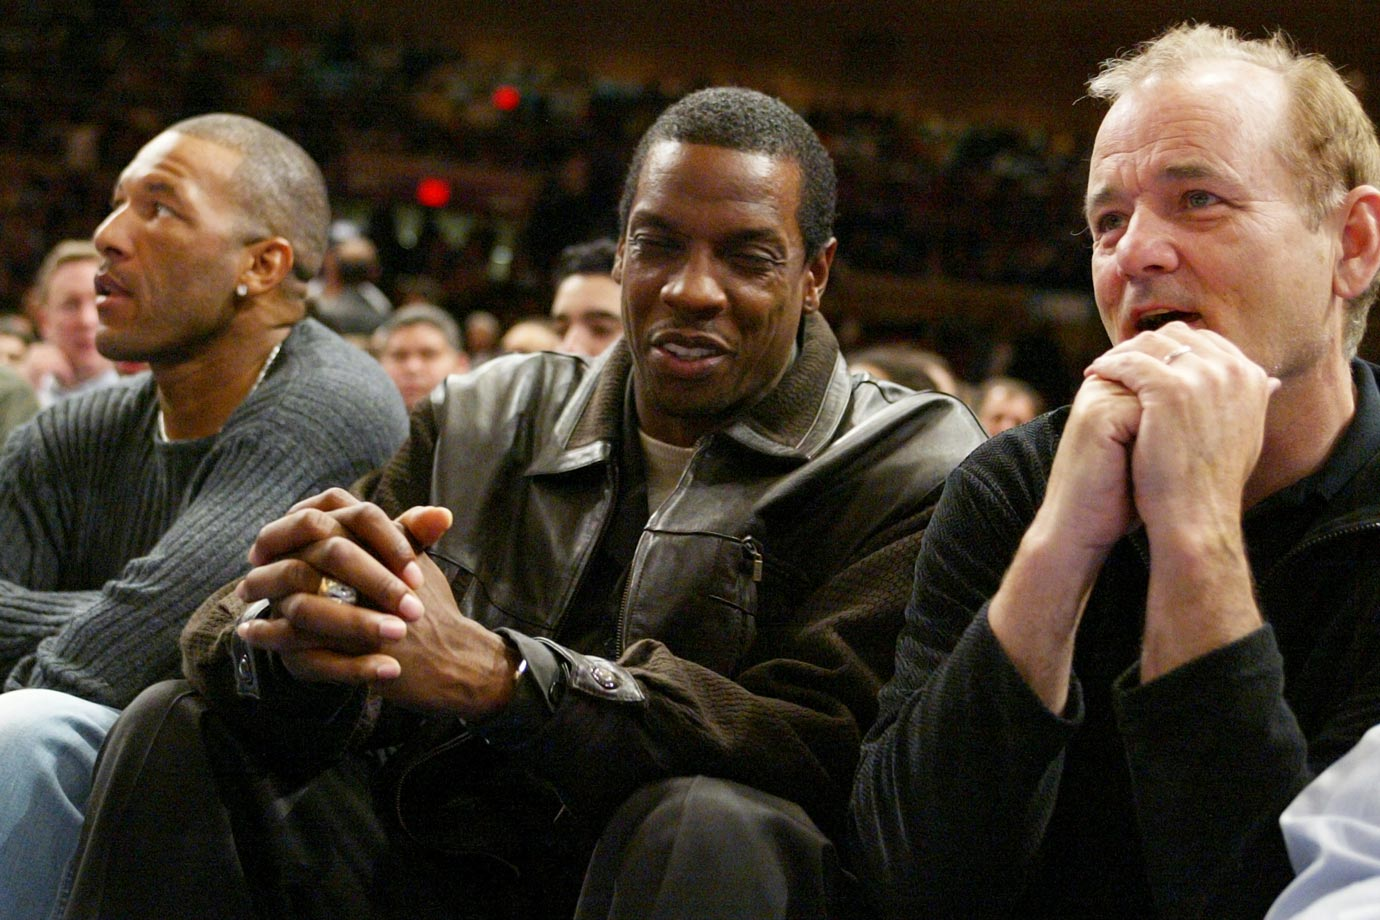 Gary Sheffield, Dwight Gooden and Bill Murray sit courtside for the the New York Knicks game against the Cleveland Cavaliers on April 14, 2004 at Madison Square Garden in New York City.